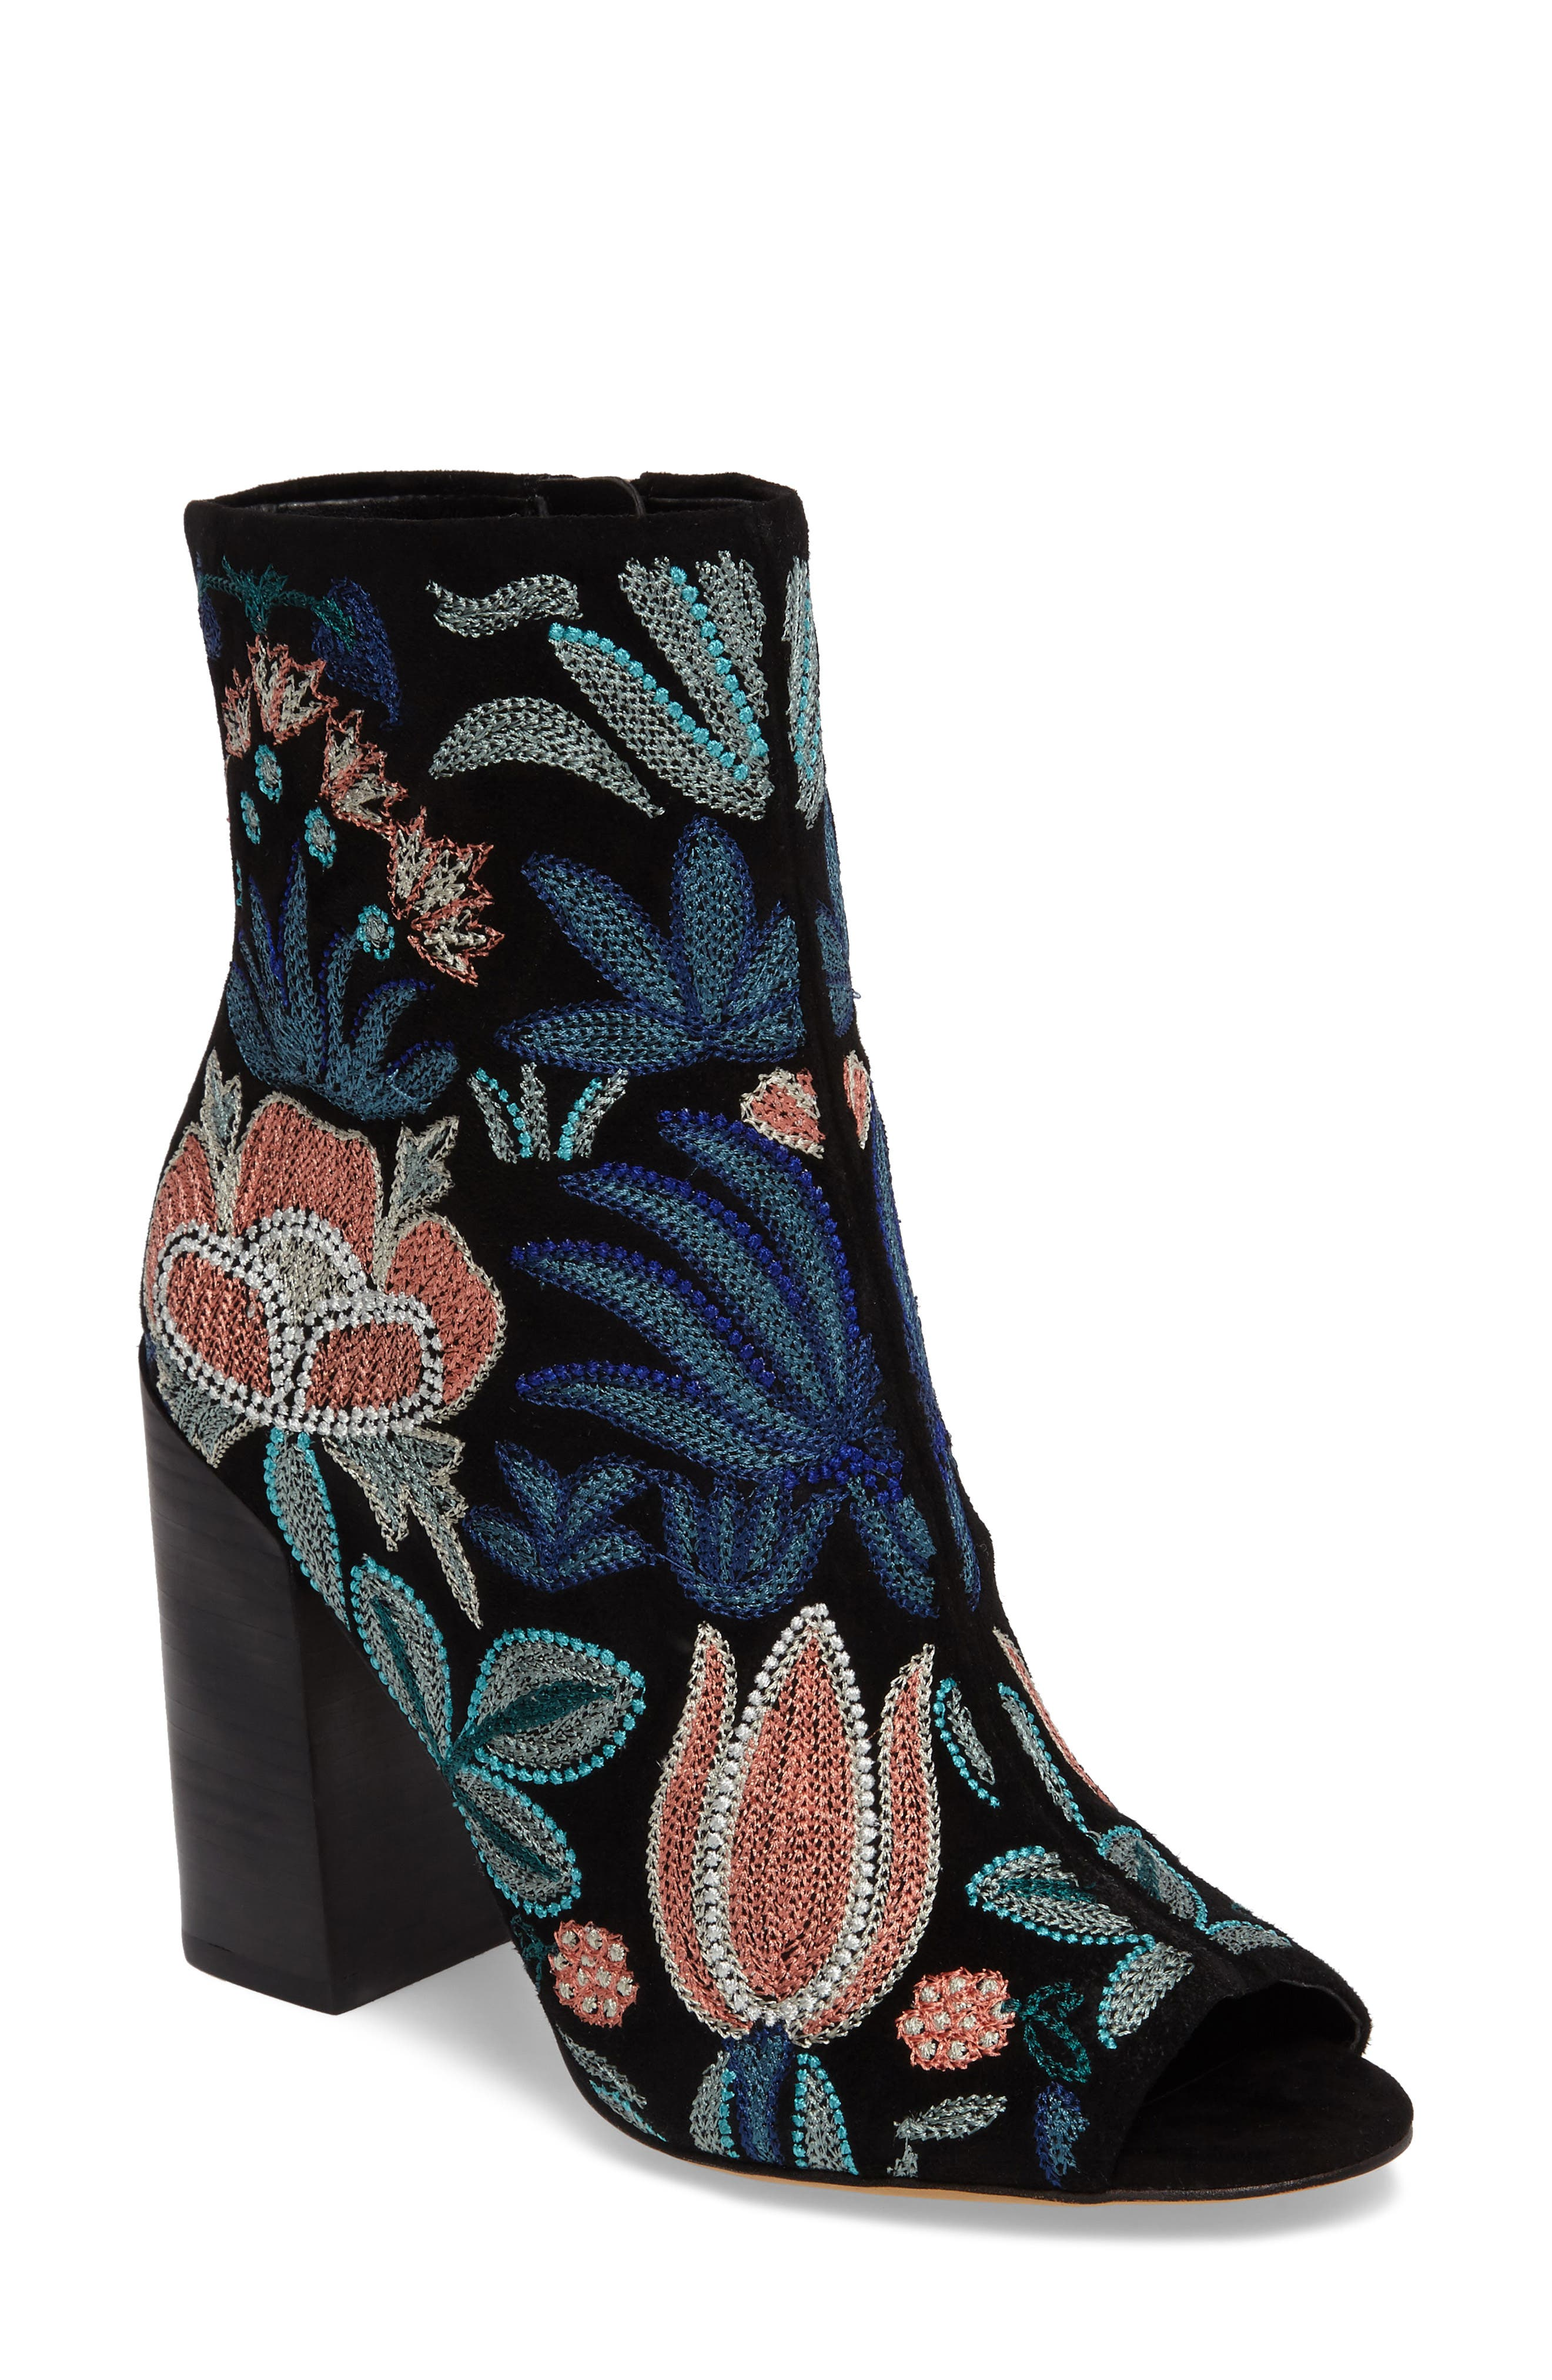 Rebecca Minkoff Billie Floral Open Toe Bootie (Women)